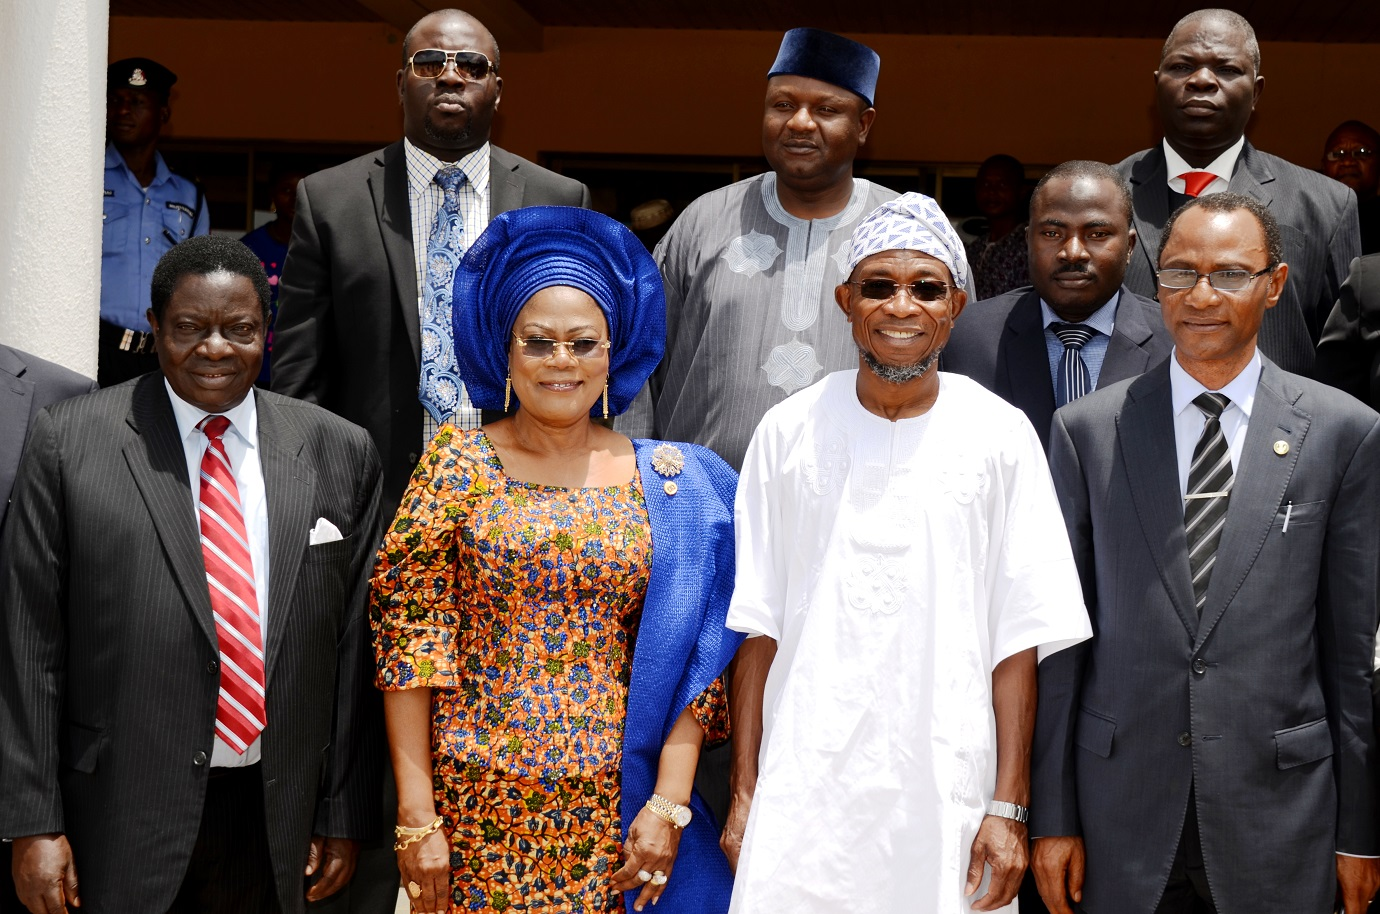 Governor State of Osun, Ogbeni Rauf Aregbesola (2nd right); his Deputy, Mrs Titi Laoye-Tomori (2nd left); Representative, State of Osun Chief Judge,  Honourable Justice Adebisi Ogunlade (left); Newly Sworn-in Chairman, Commission of Inquiry on Disturbance of Public Peace, Justice Adekunle Adeigbe (right) and others, during the Inauguration of the Commission, at Government House, Osogbo, State of Osun on Thursday 15-05-2014